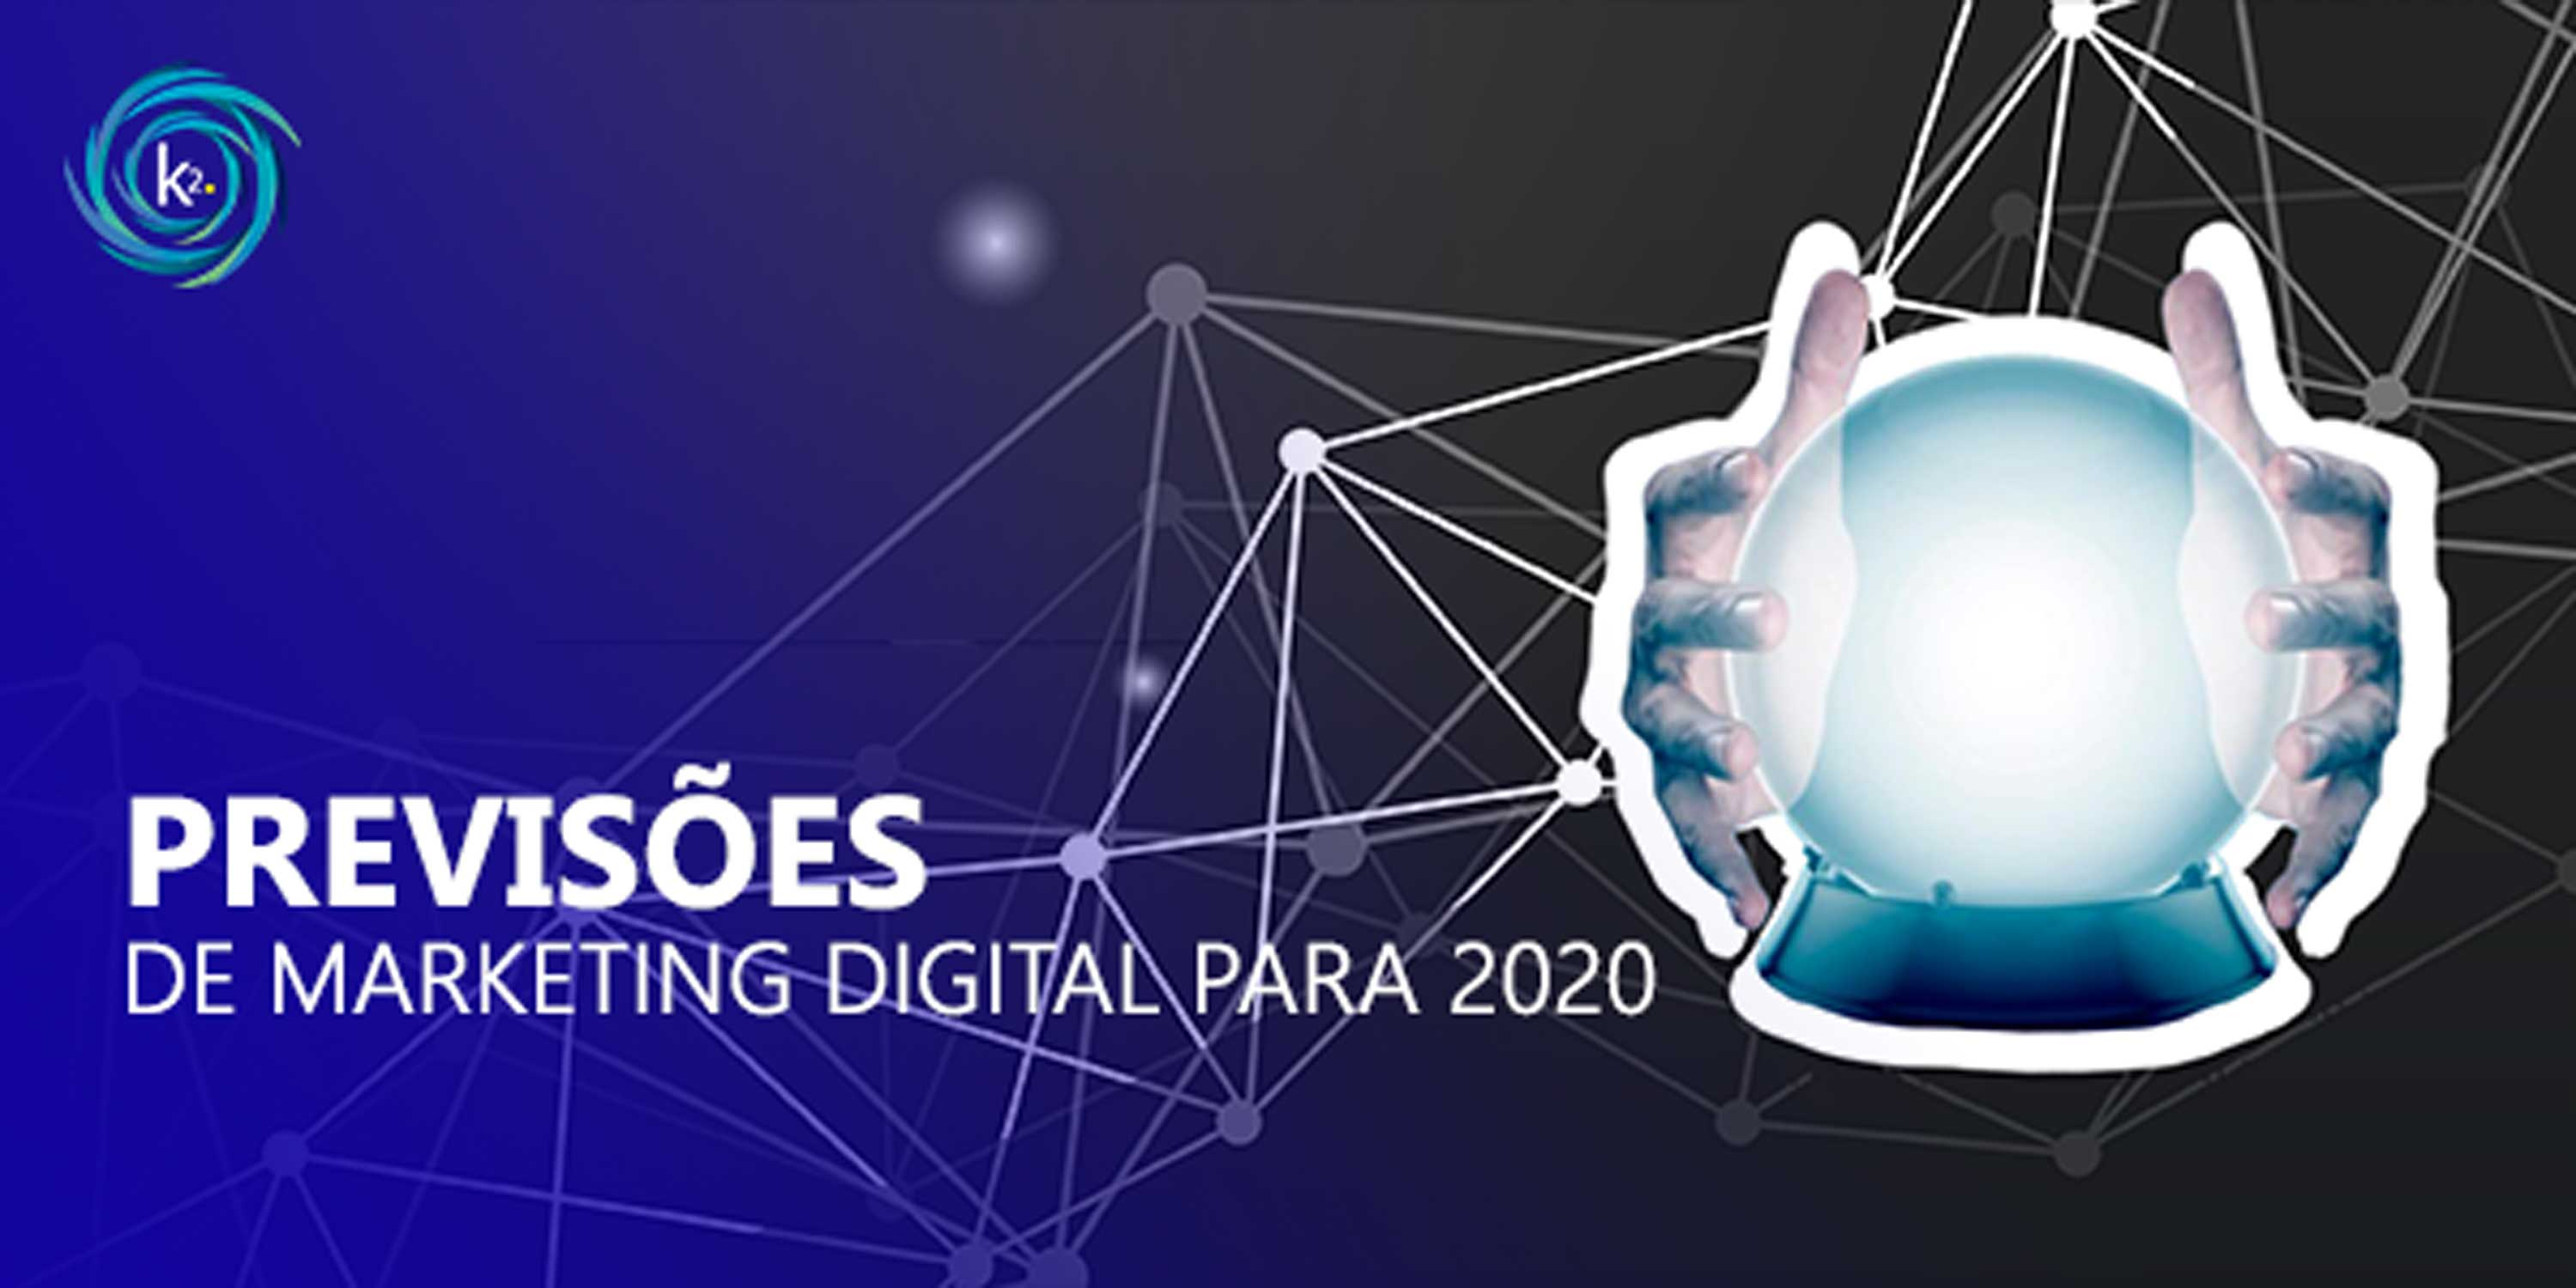 previsões de marketing digital para 2020